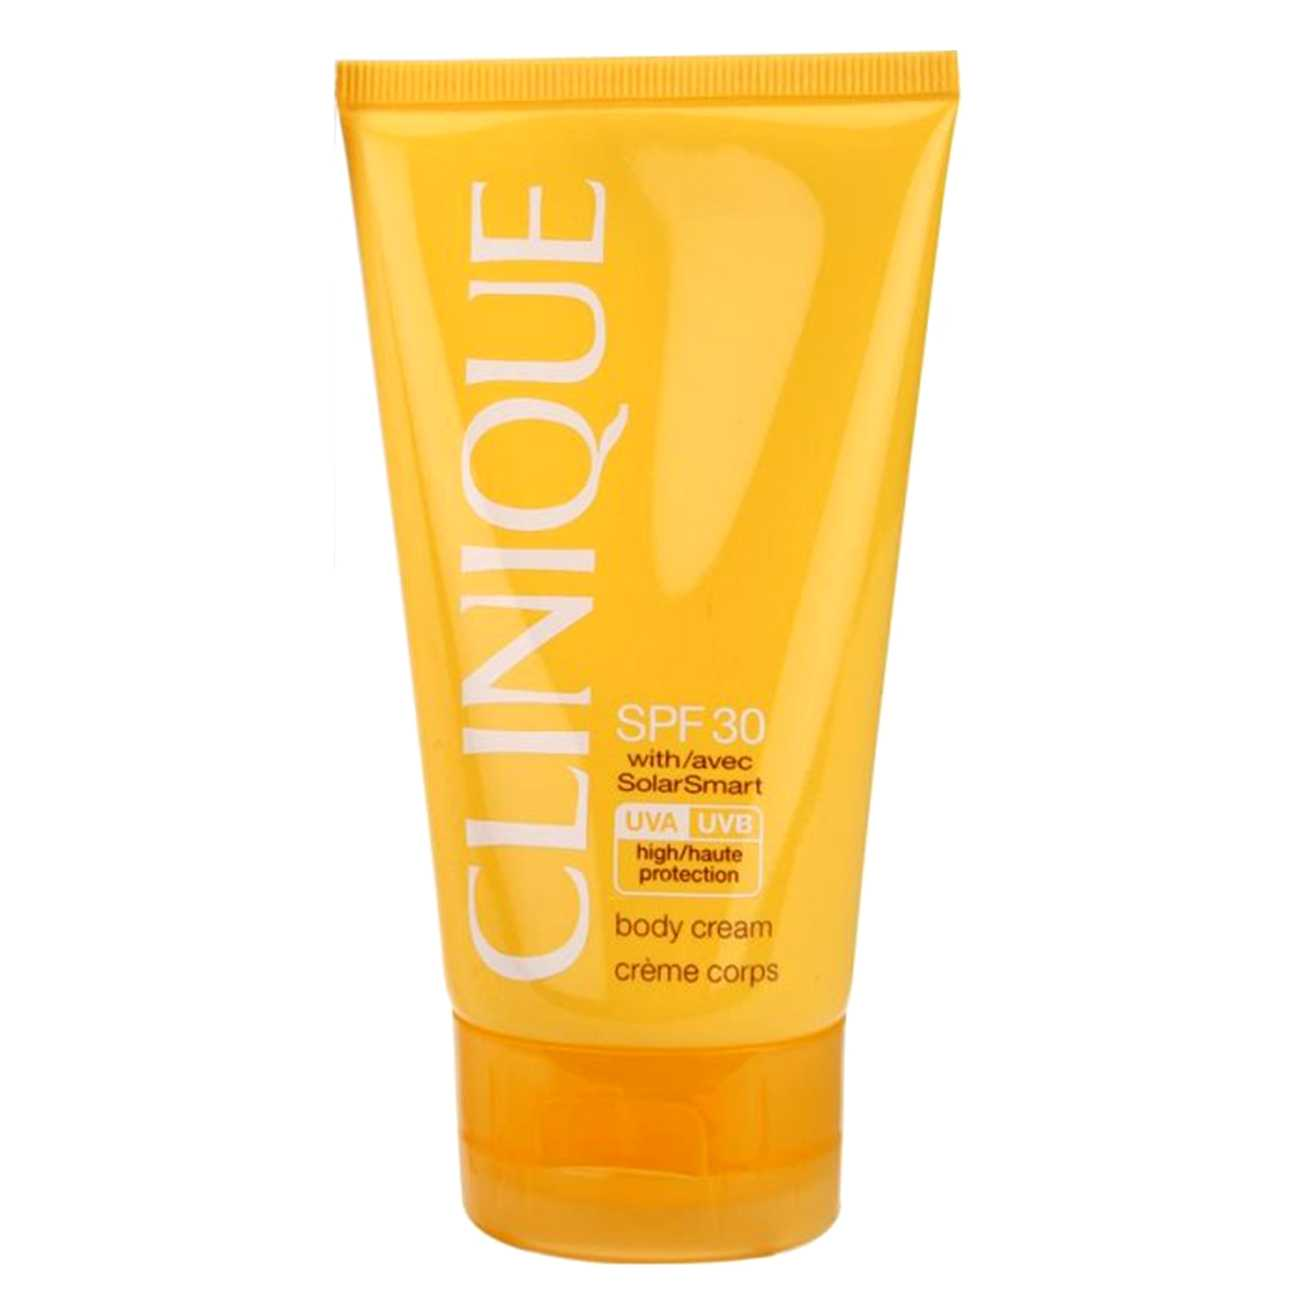 SUN BODY CREAM 150 ML poza noua